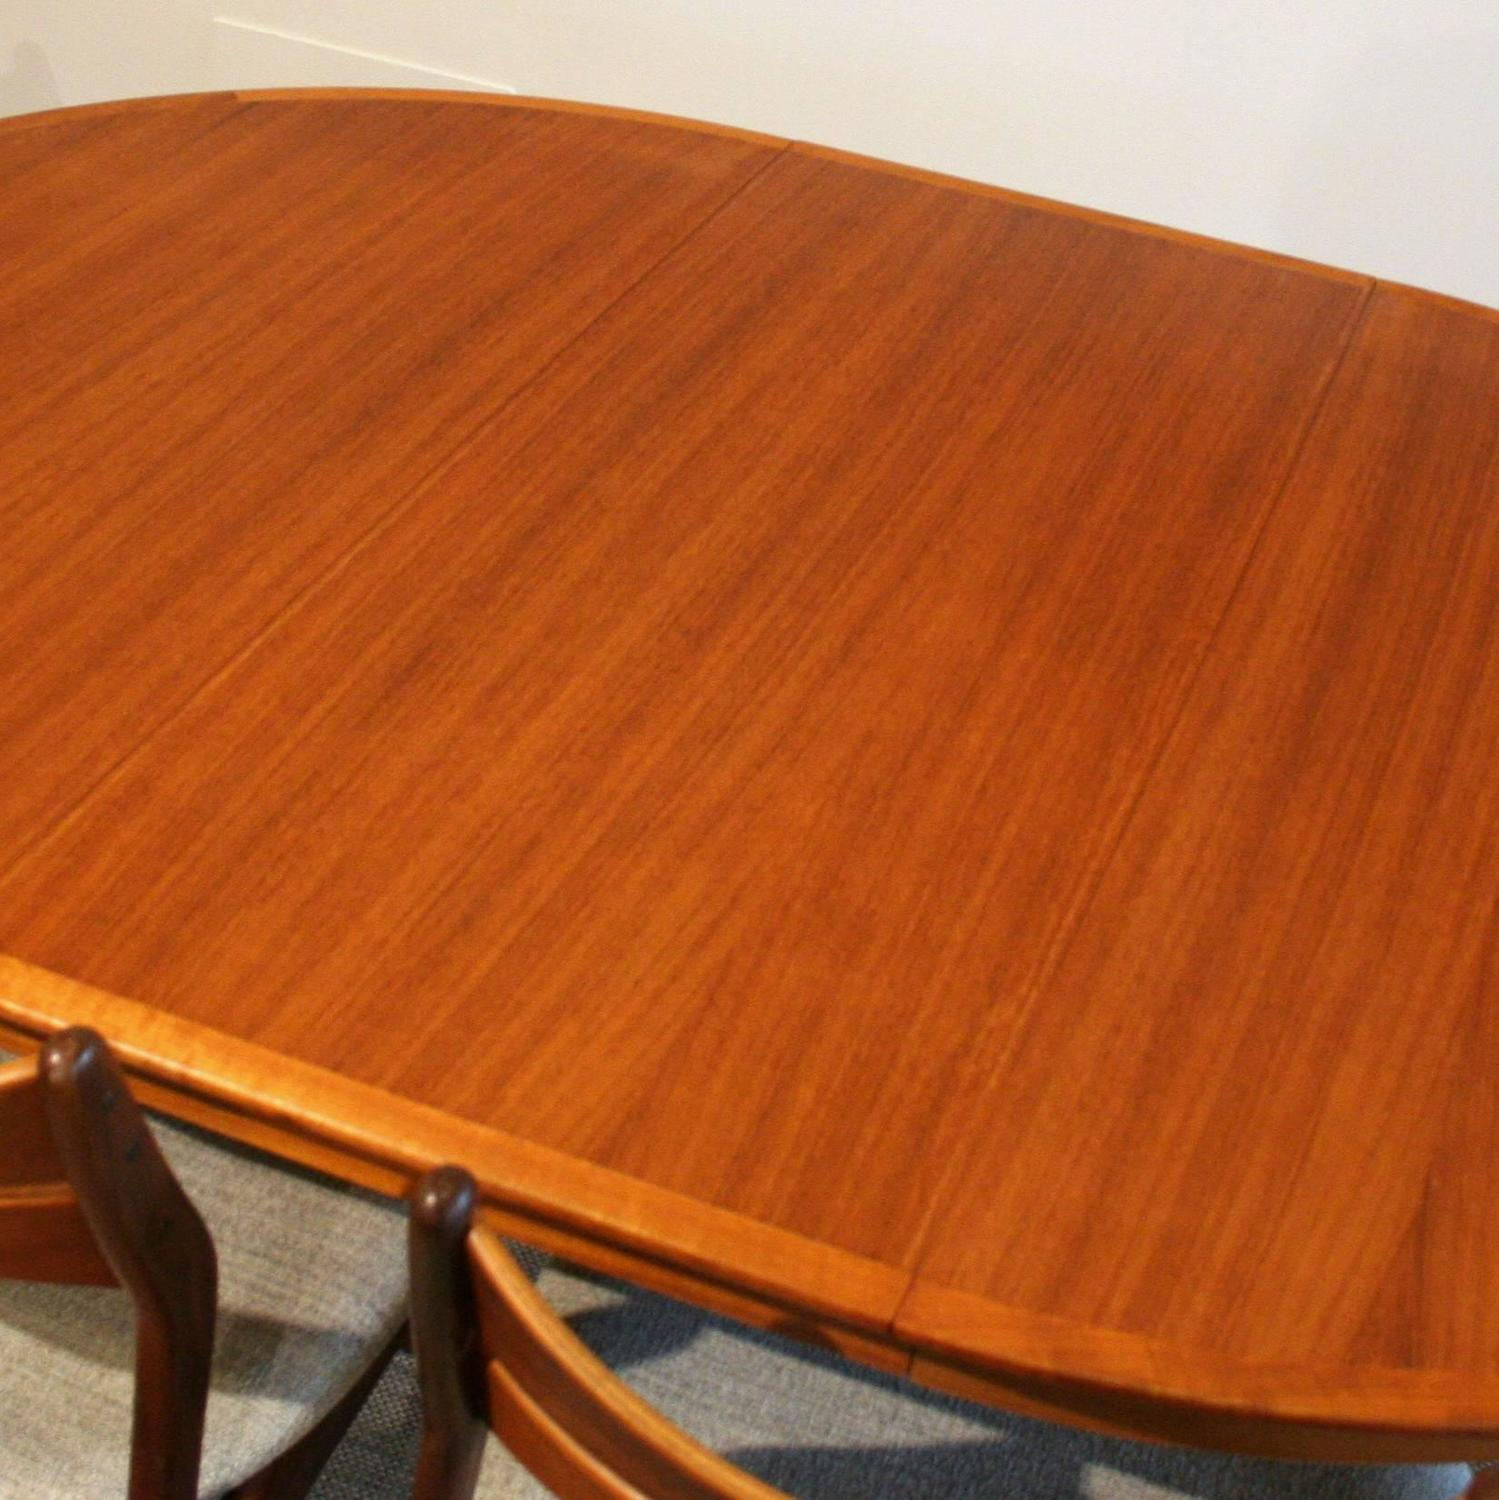 Vintage Danish Teak Round Dining Table at 1stdibs : IMG3566z from www.1stdibs.com size 1499 x 1500 jpeg 185kB